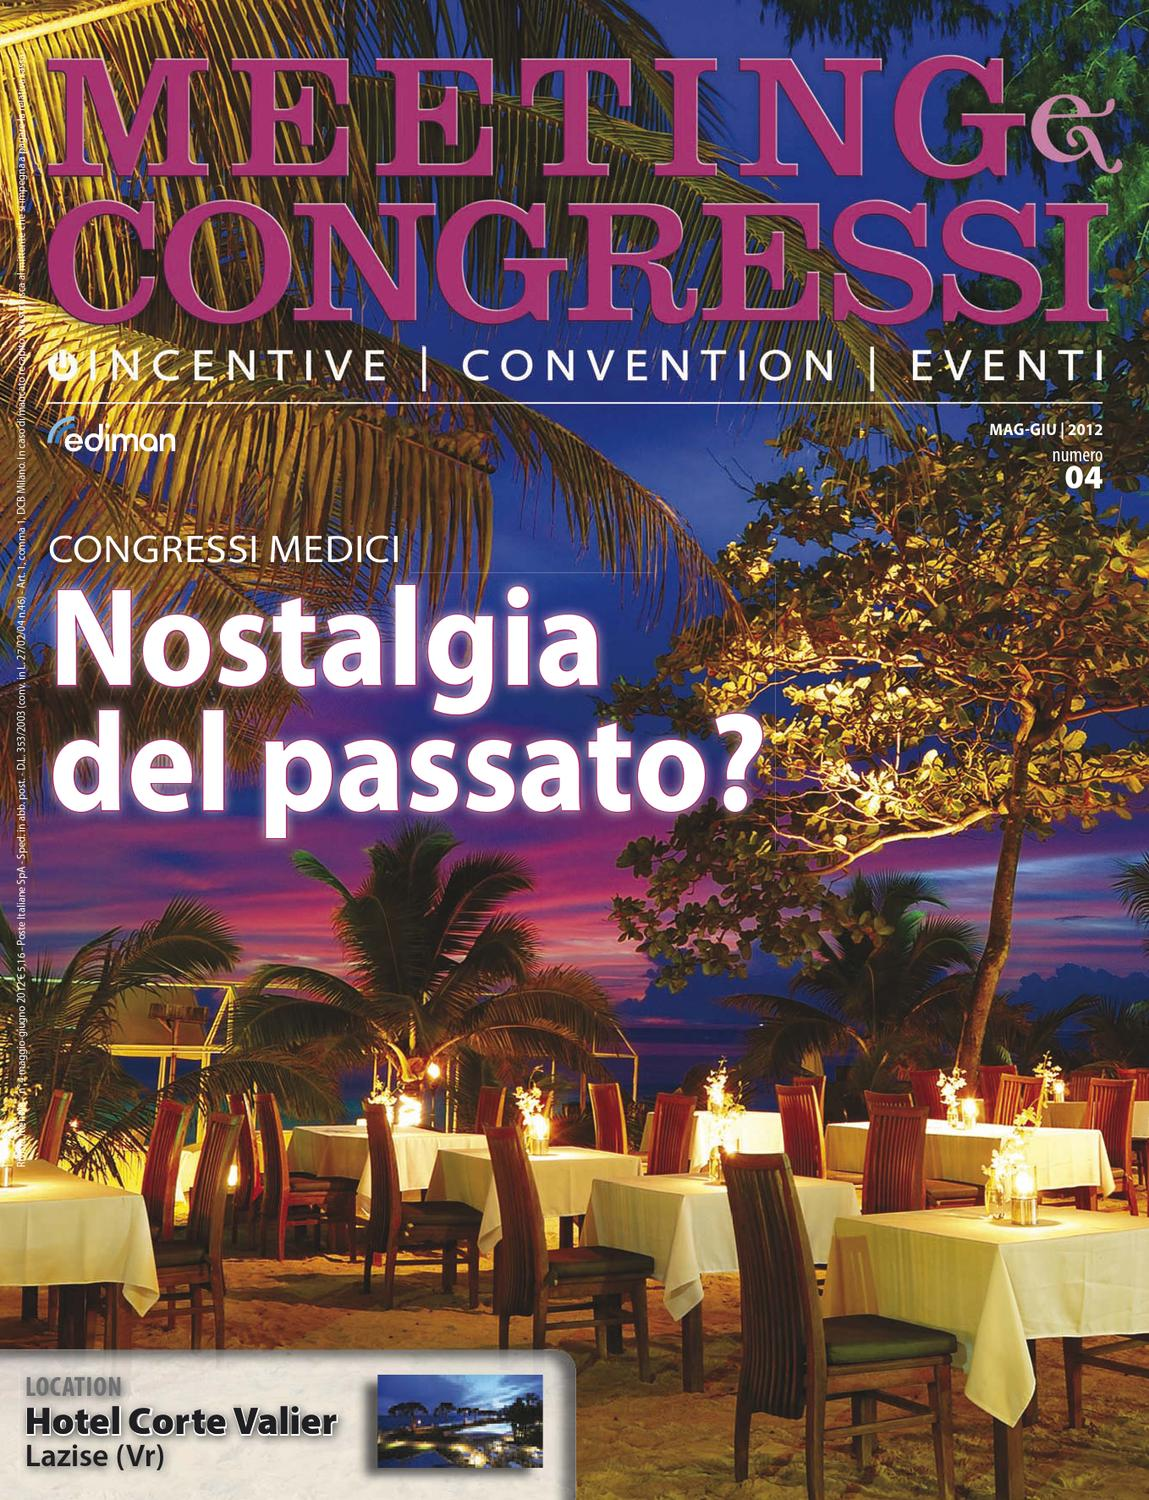 1772625a6653 Meeting e Congressi - Mag Giu Lug 2012 by Ediman - issuu